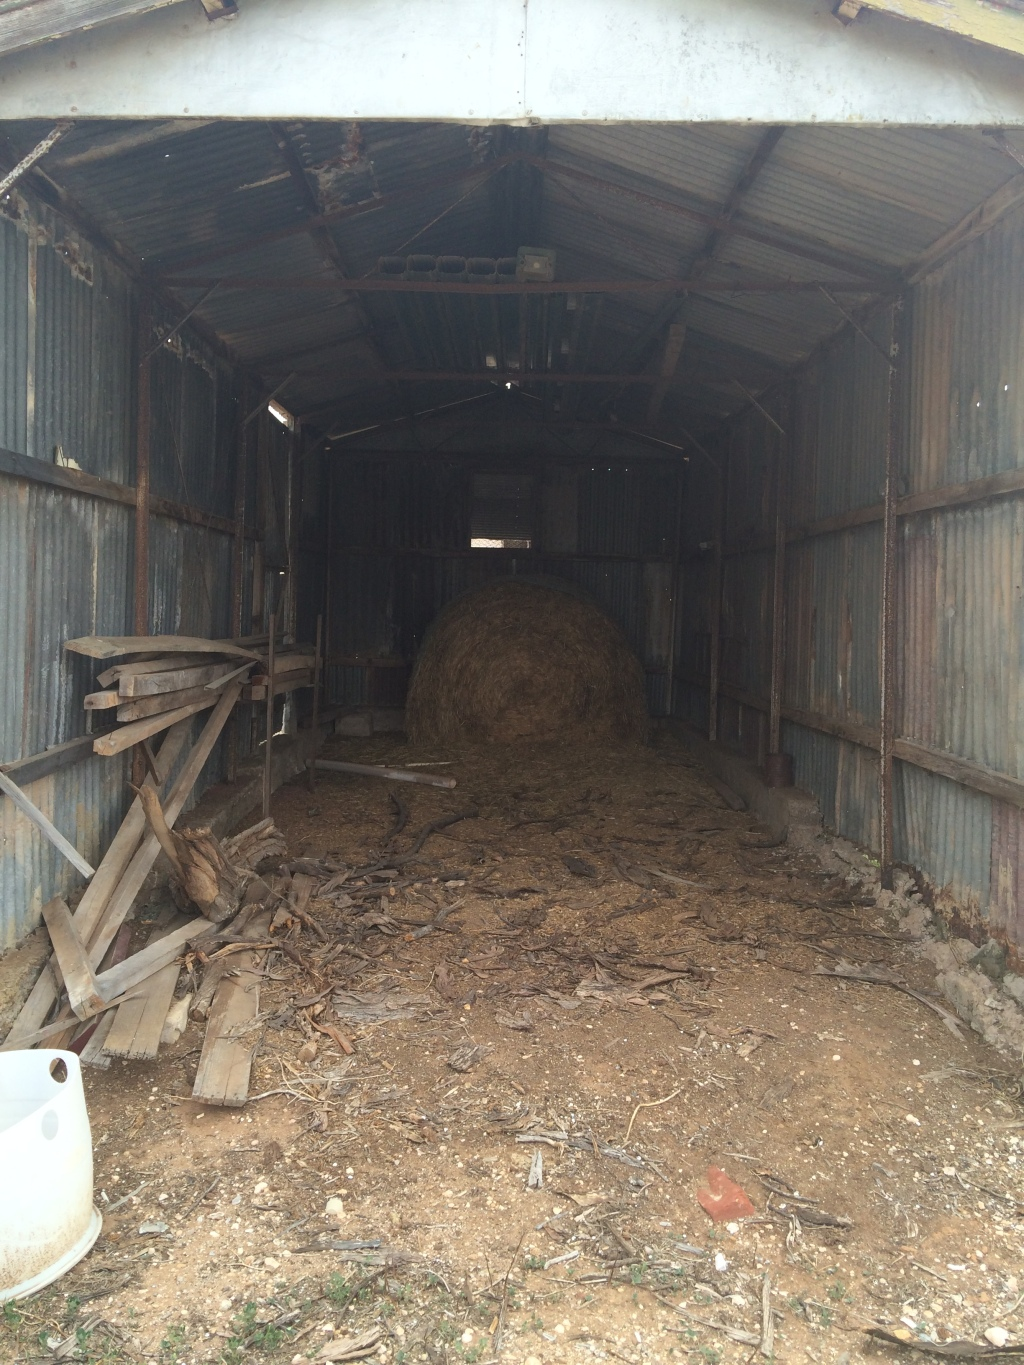 This is an old motor shed - around 3 x 7 or 8. We've also converted this into a farrowing shed, but will need to put up lean boards before putting a mum in there.